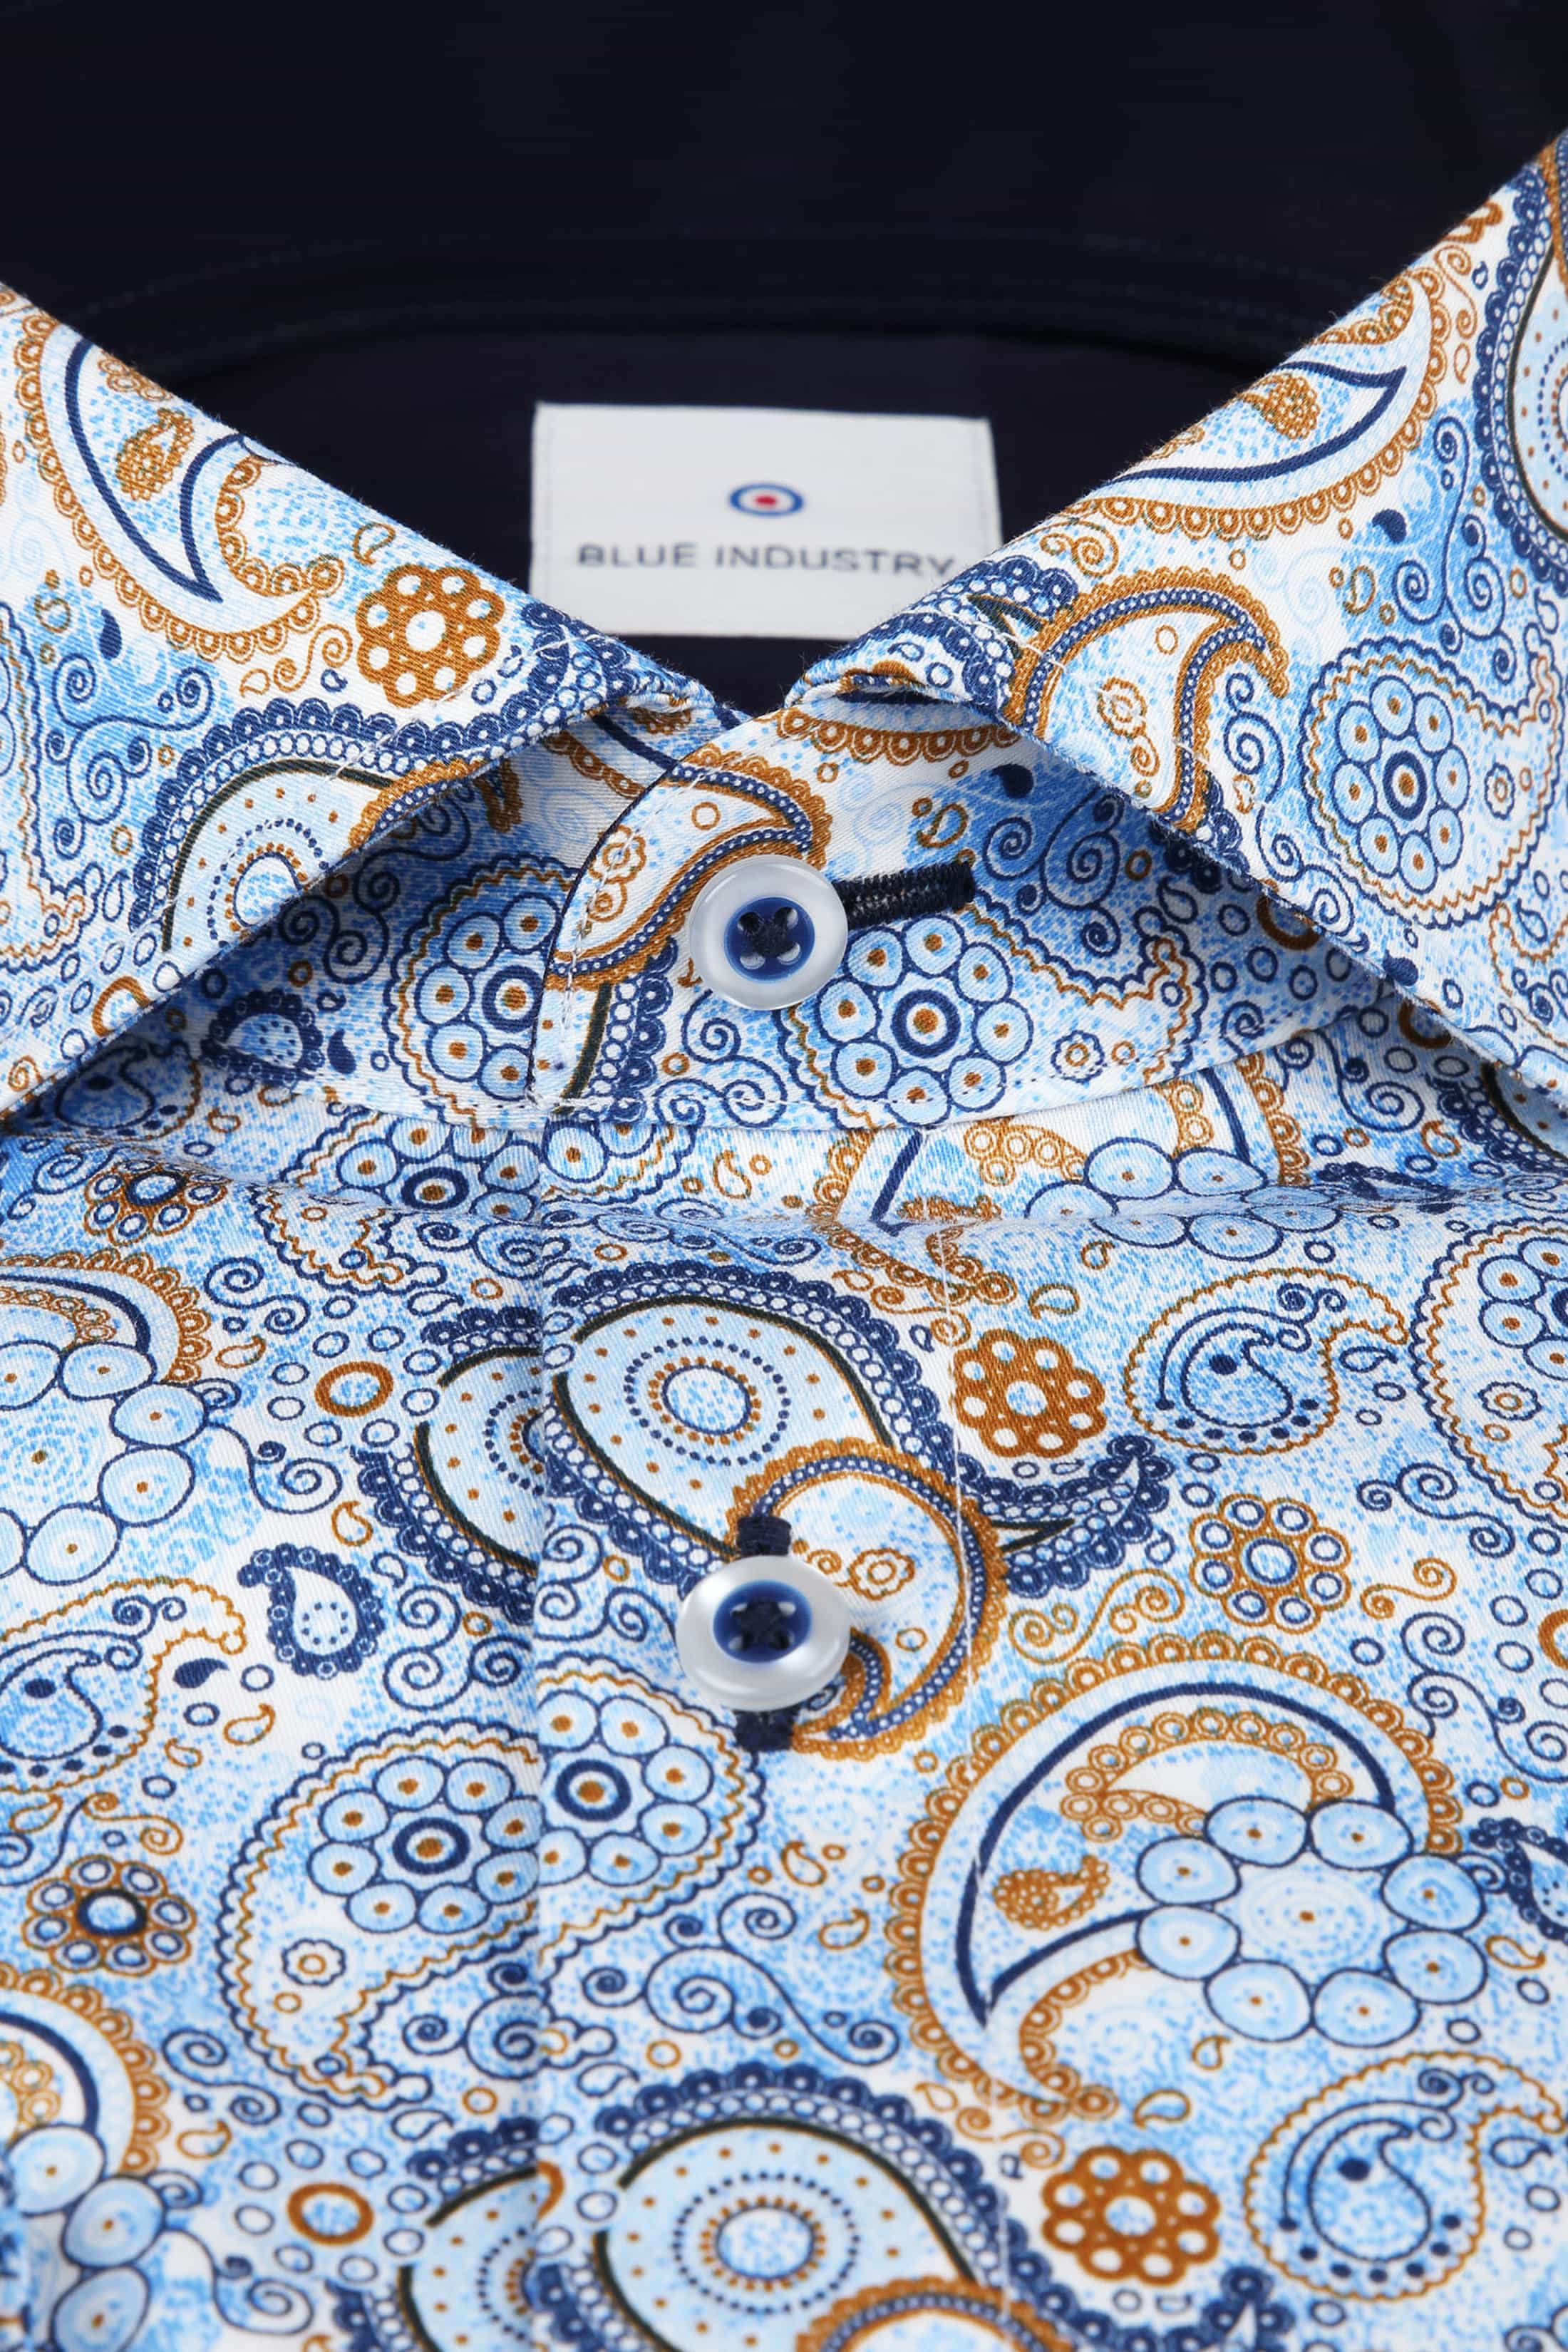 Blue Industry Overhemd Blauw Paisley foto 2